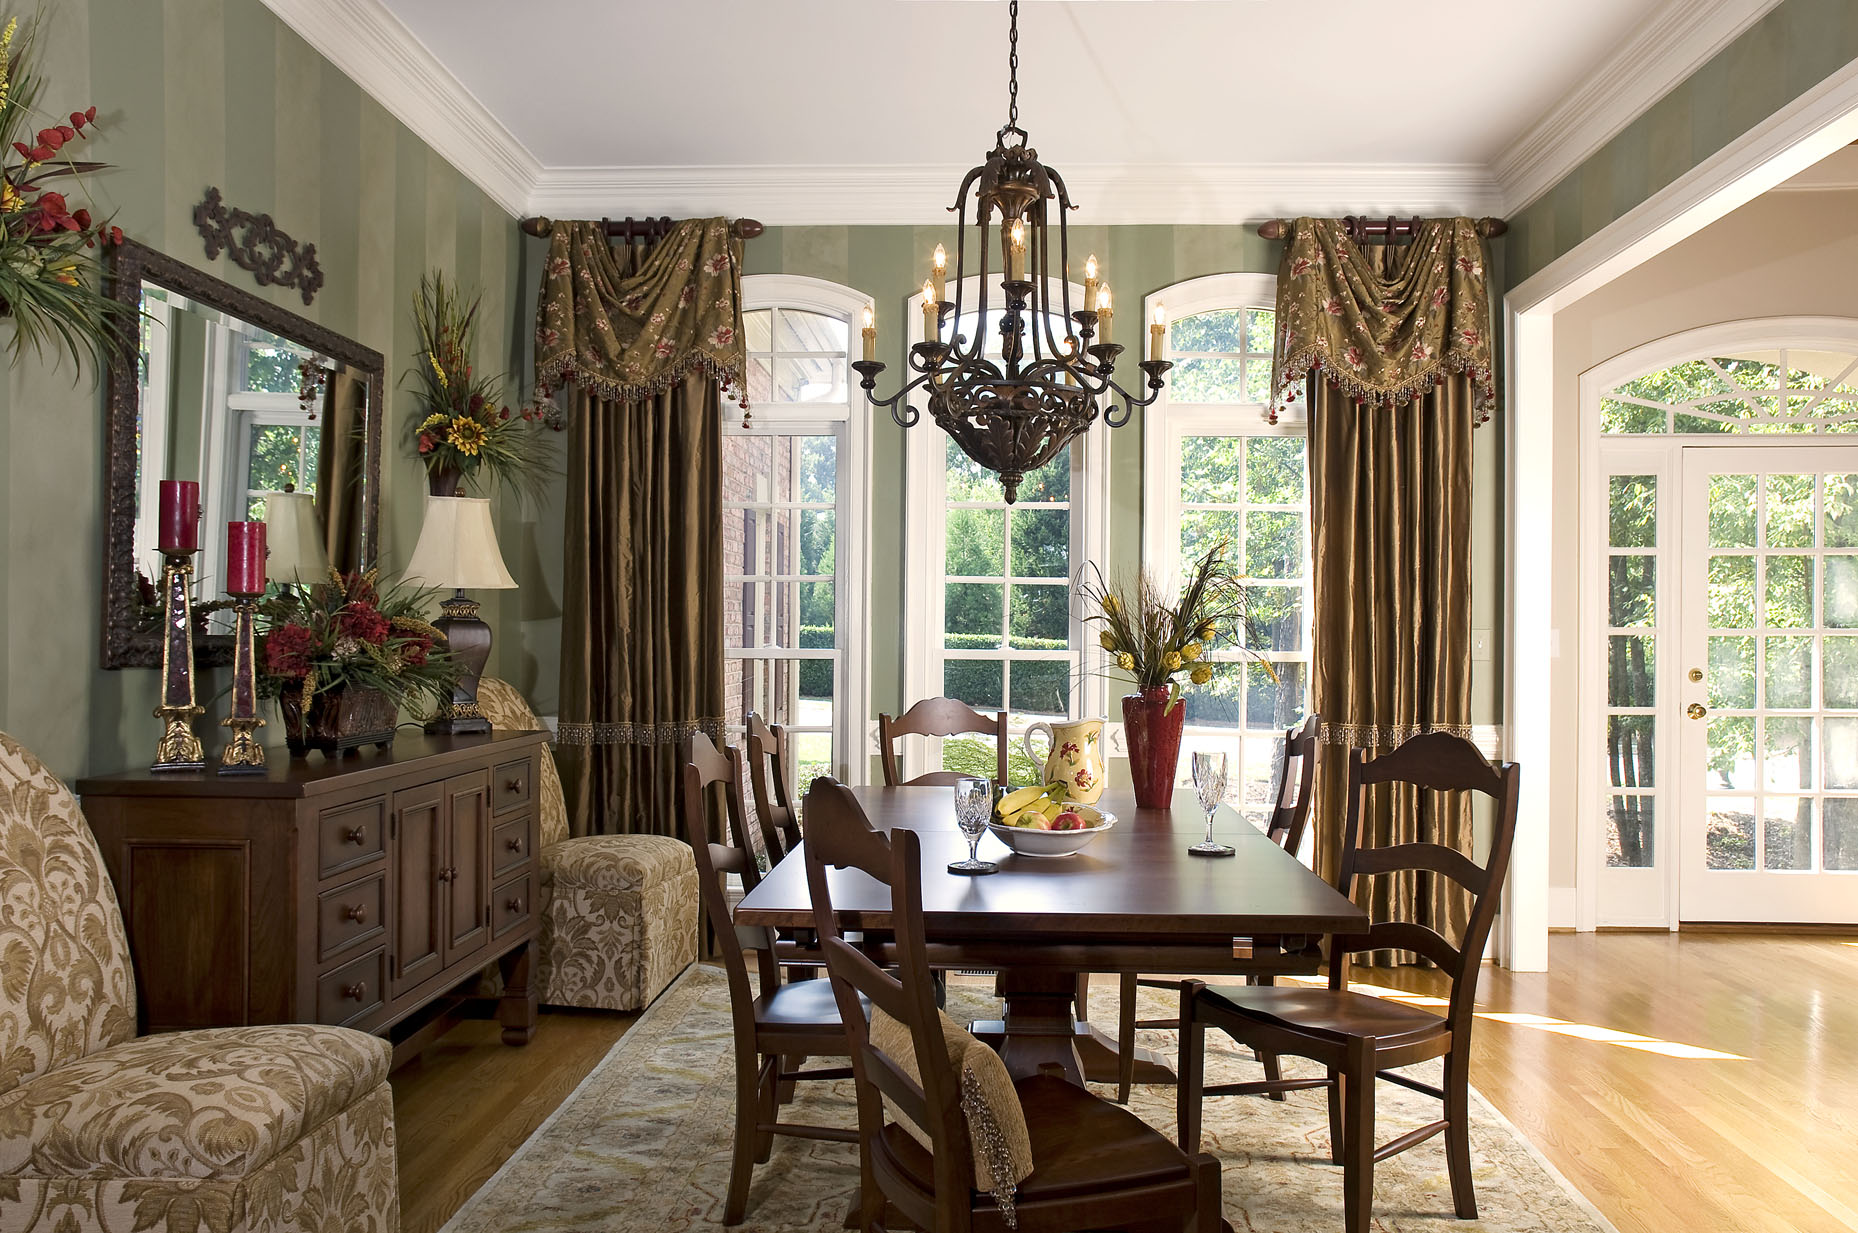 Decorating den interiorsr blog interior decorating and for Interior decorator window treatments